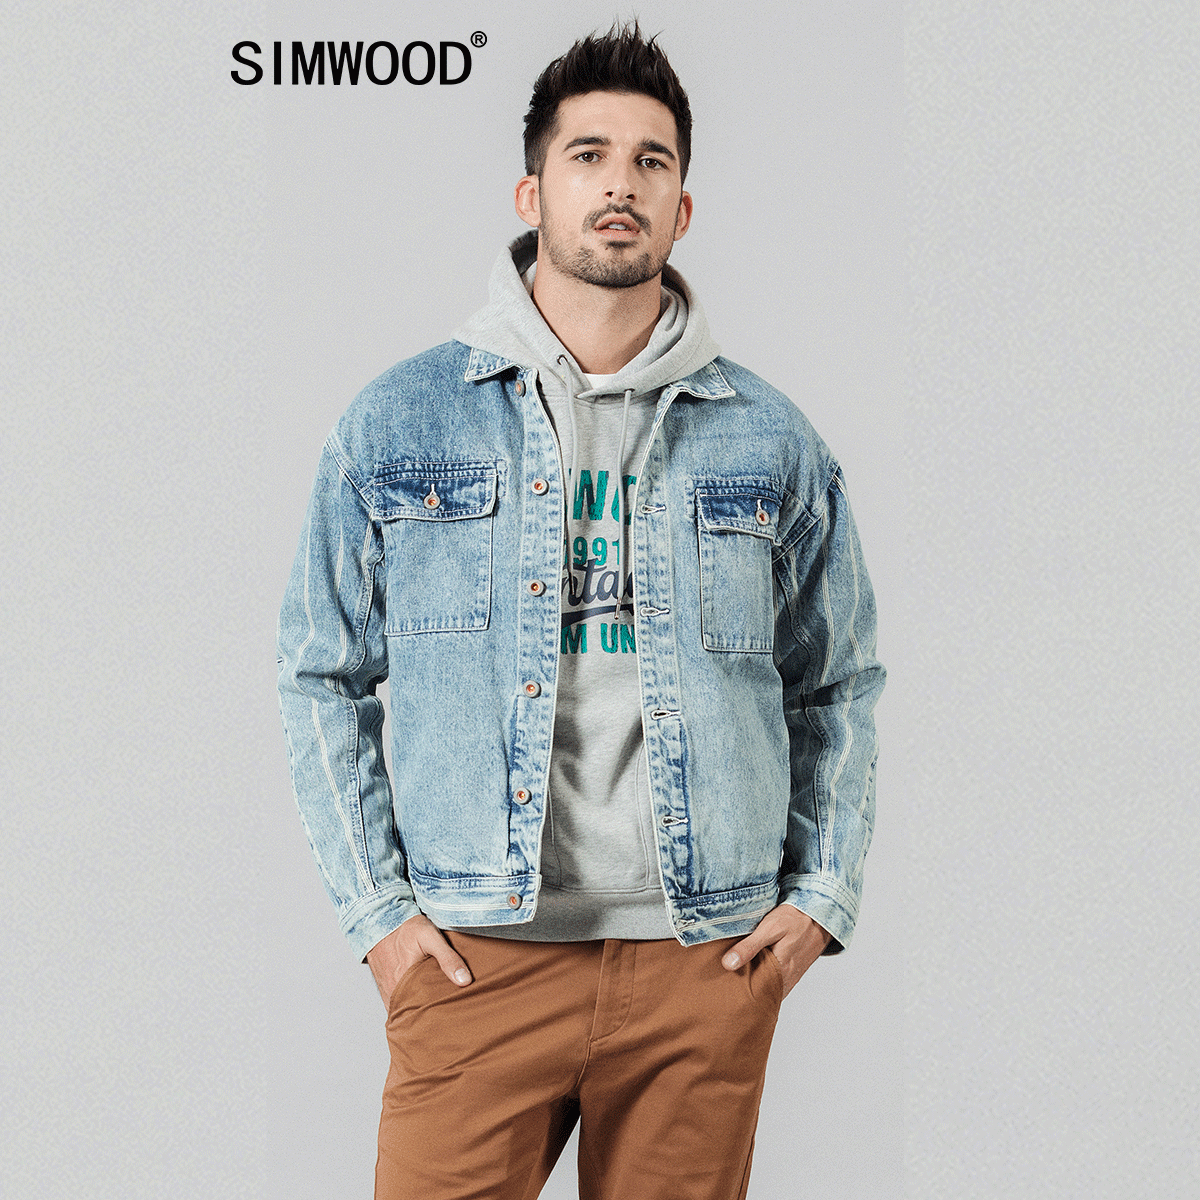 SIMWOOD 2020 Spring New Denim Jackets Men Double Pocket Vertical Striped 100% Cotton Back Denim Chore Coats Streetwear 1903561